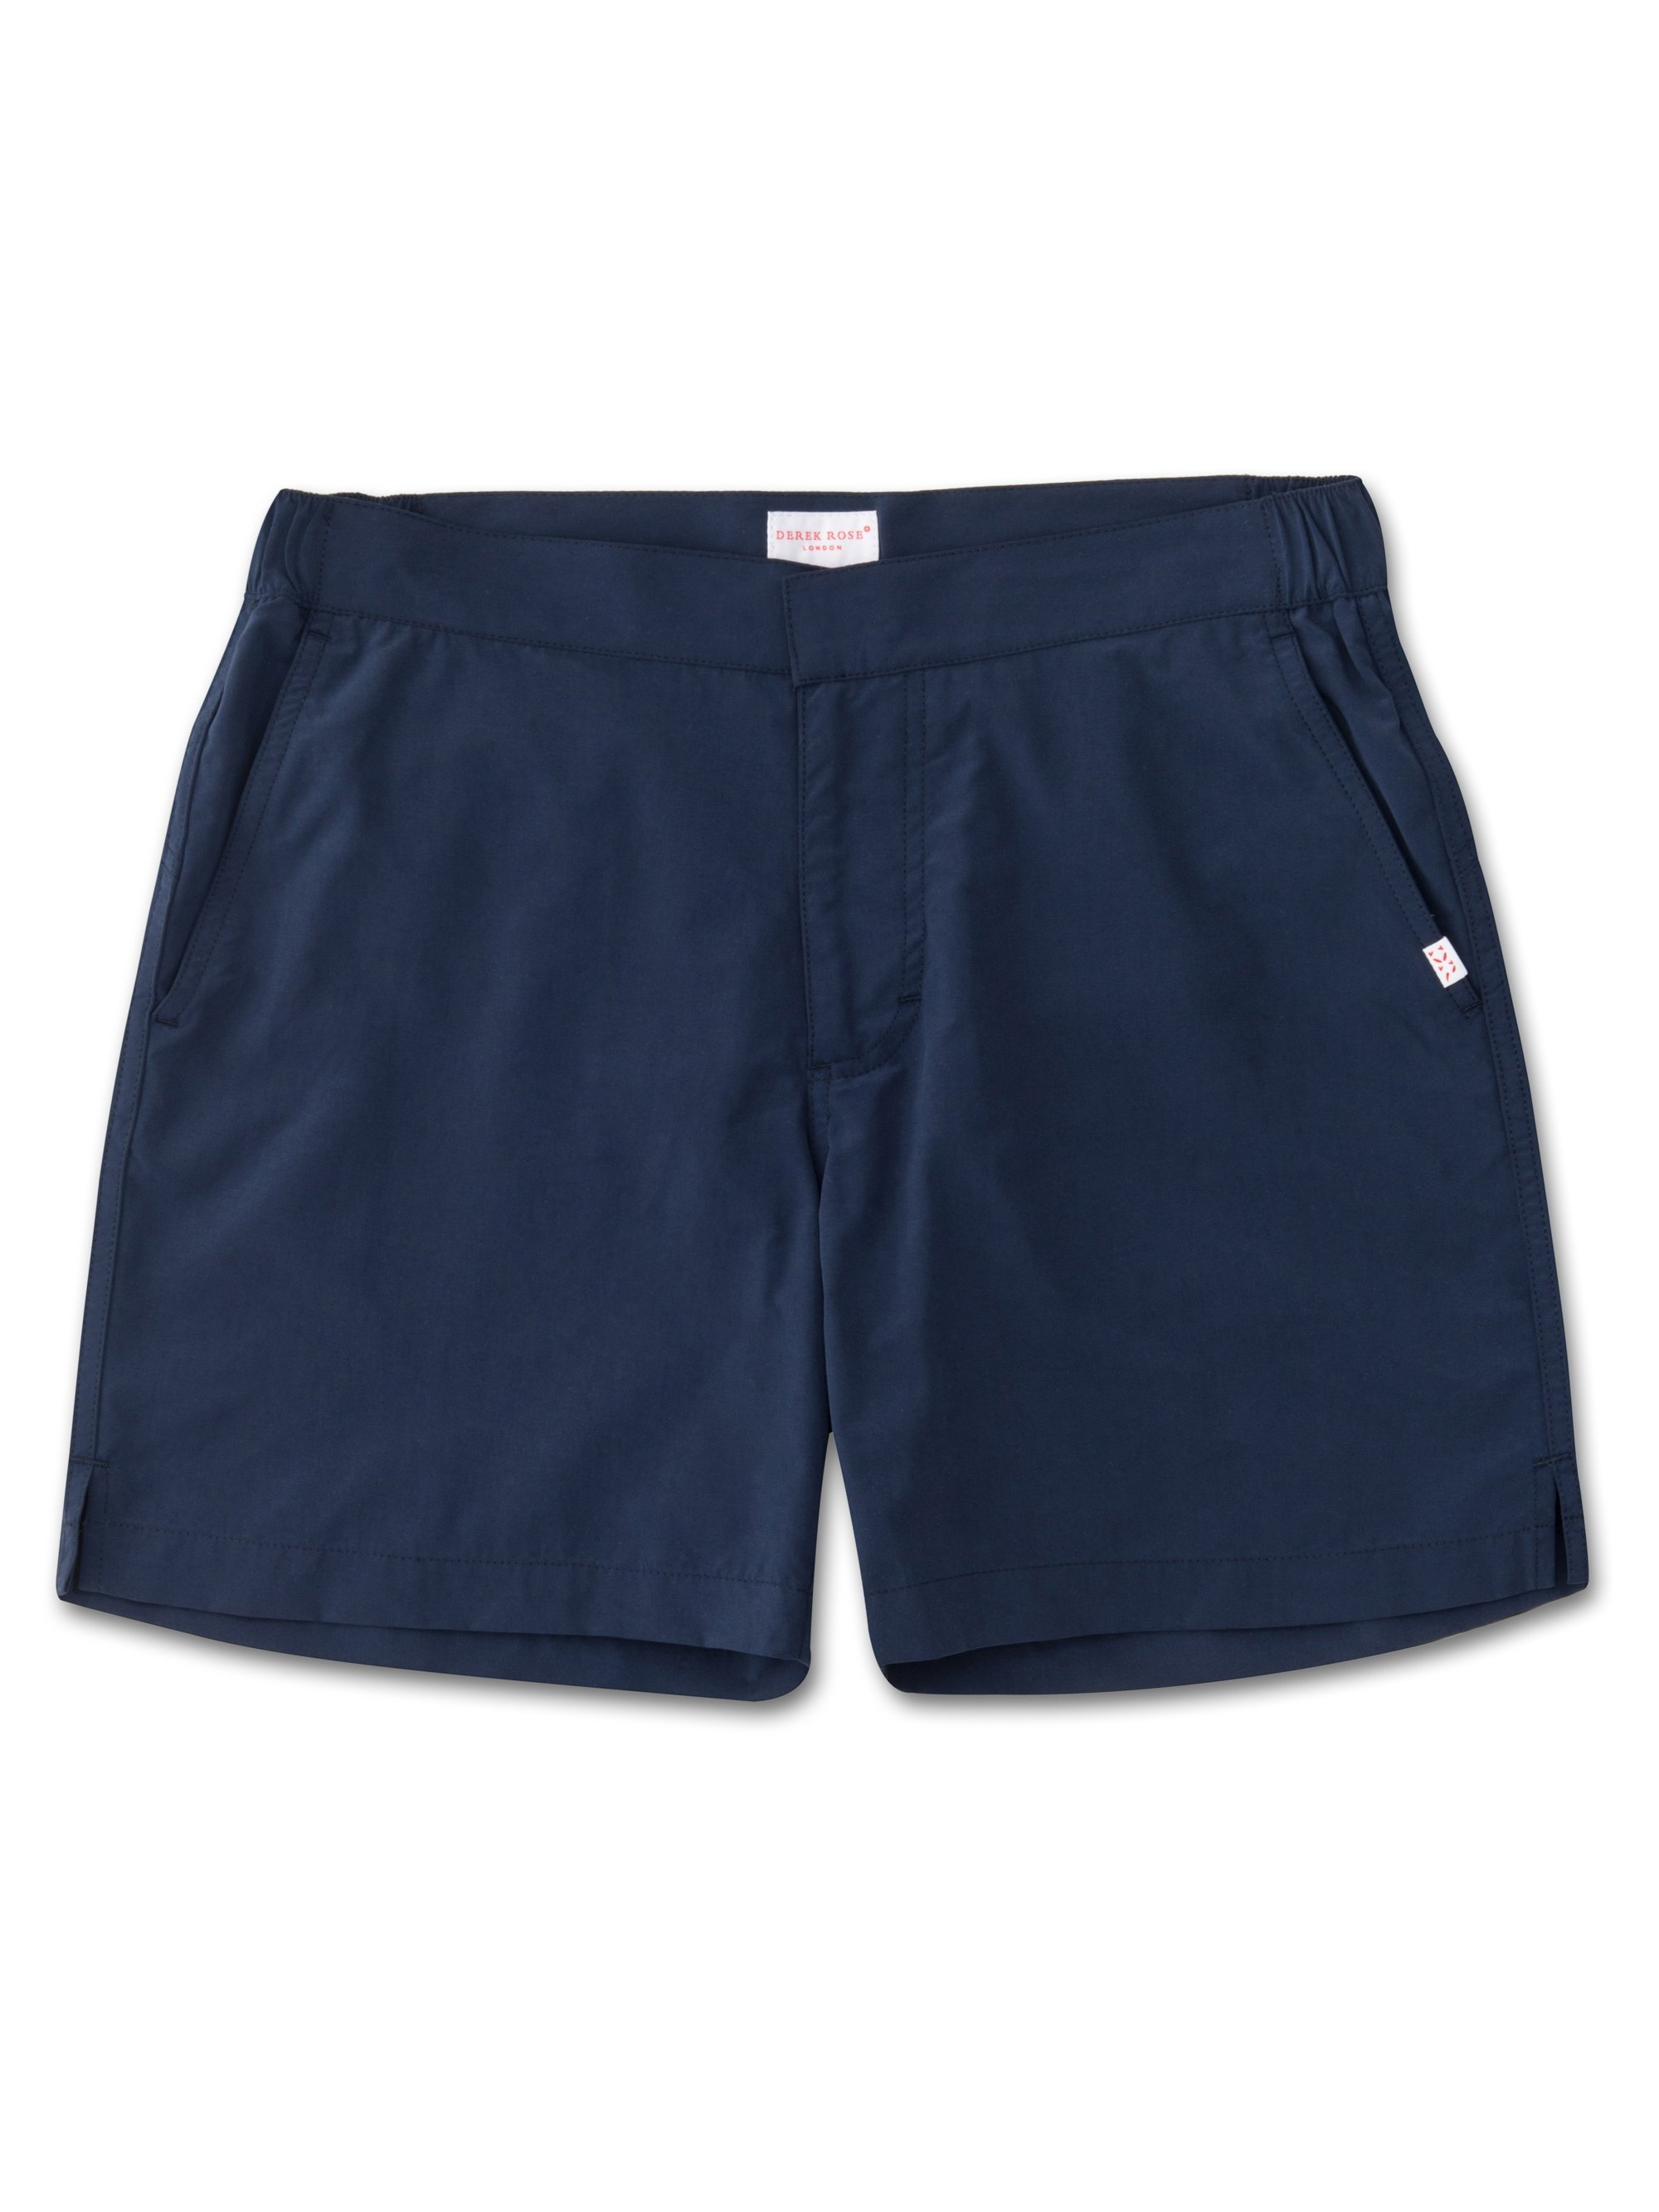 Men's Modern Fit Swim Shorts Aruba Navy